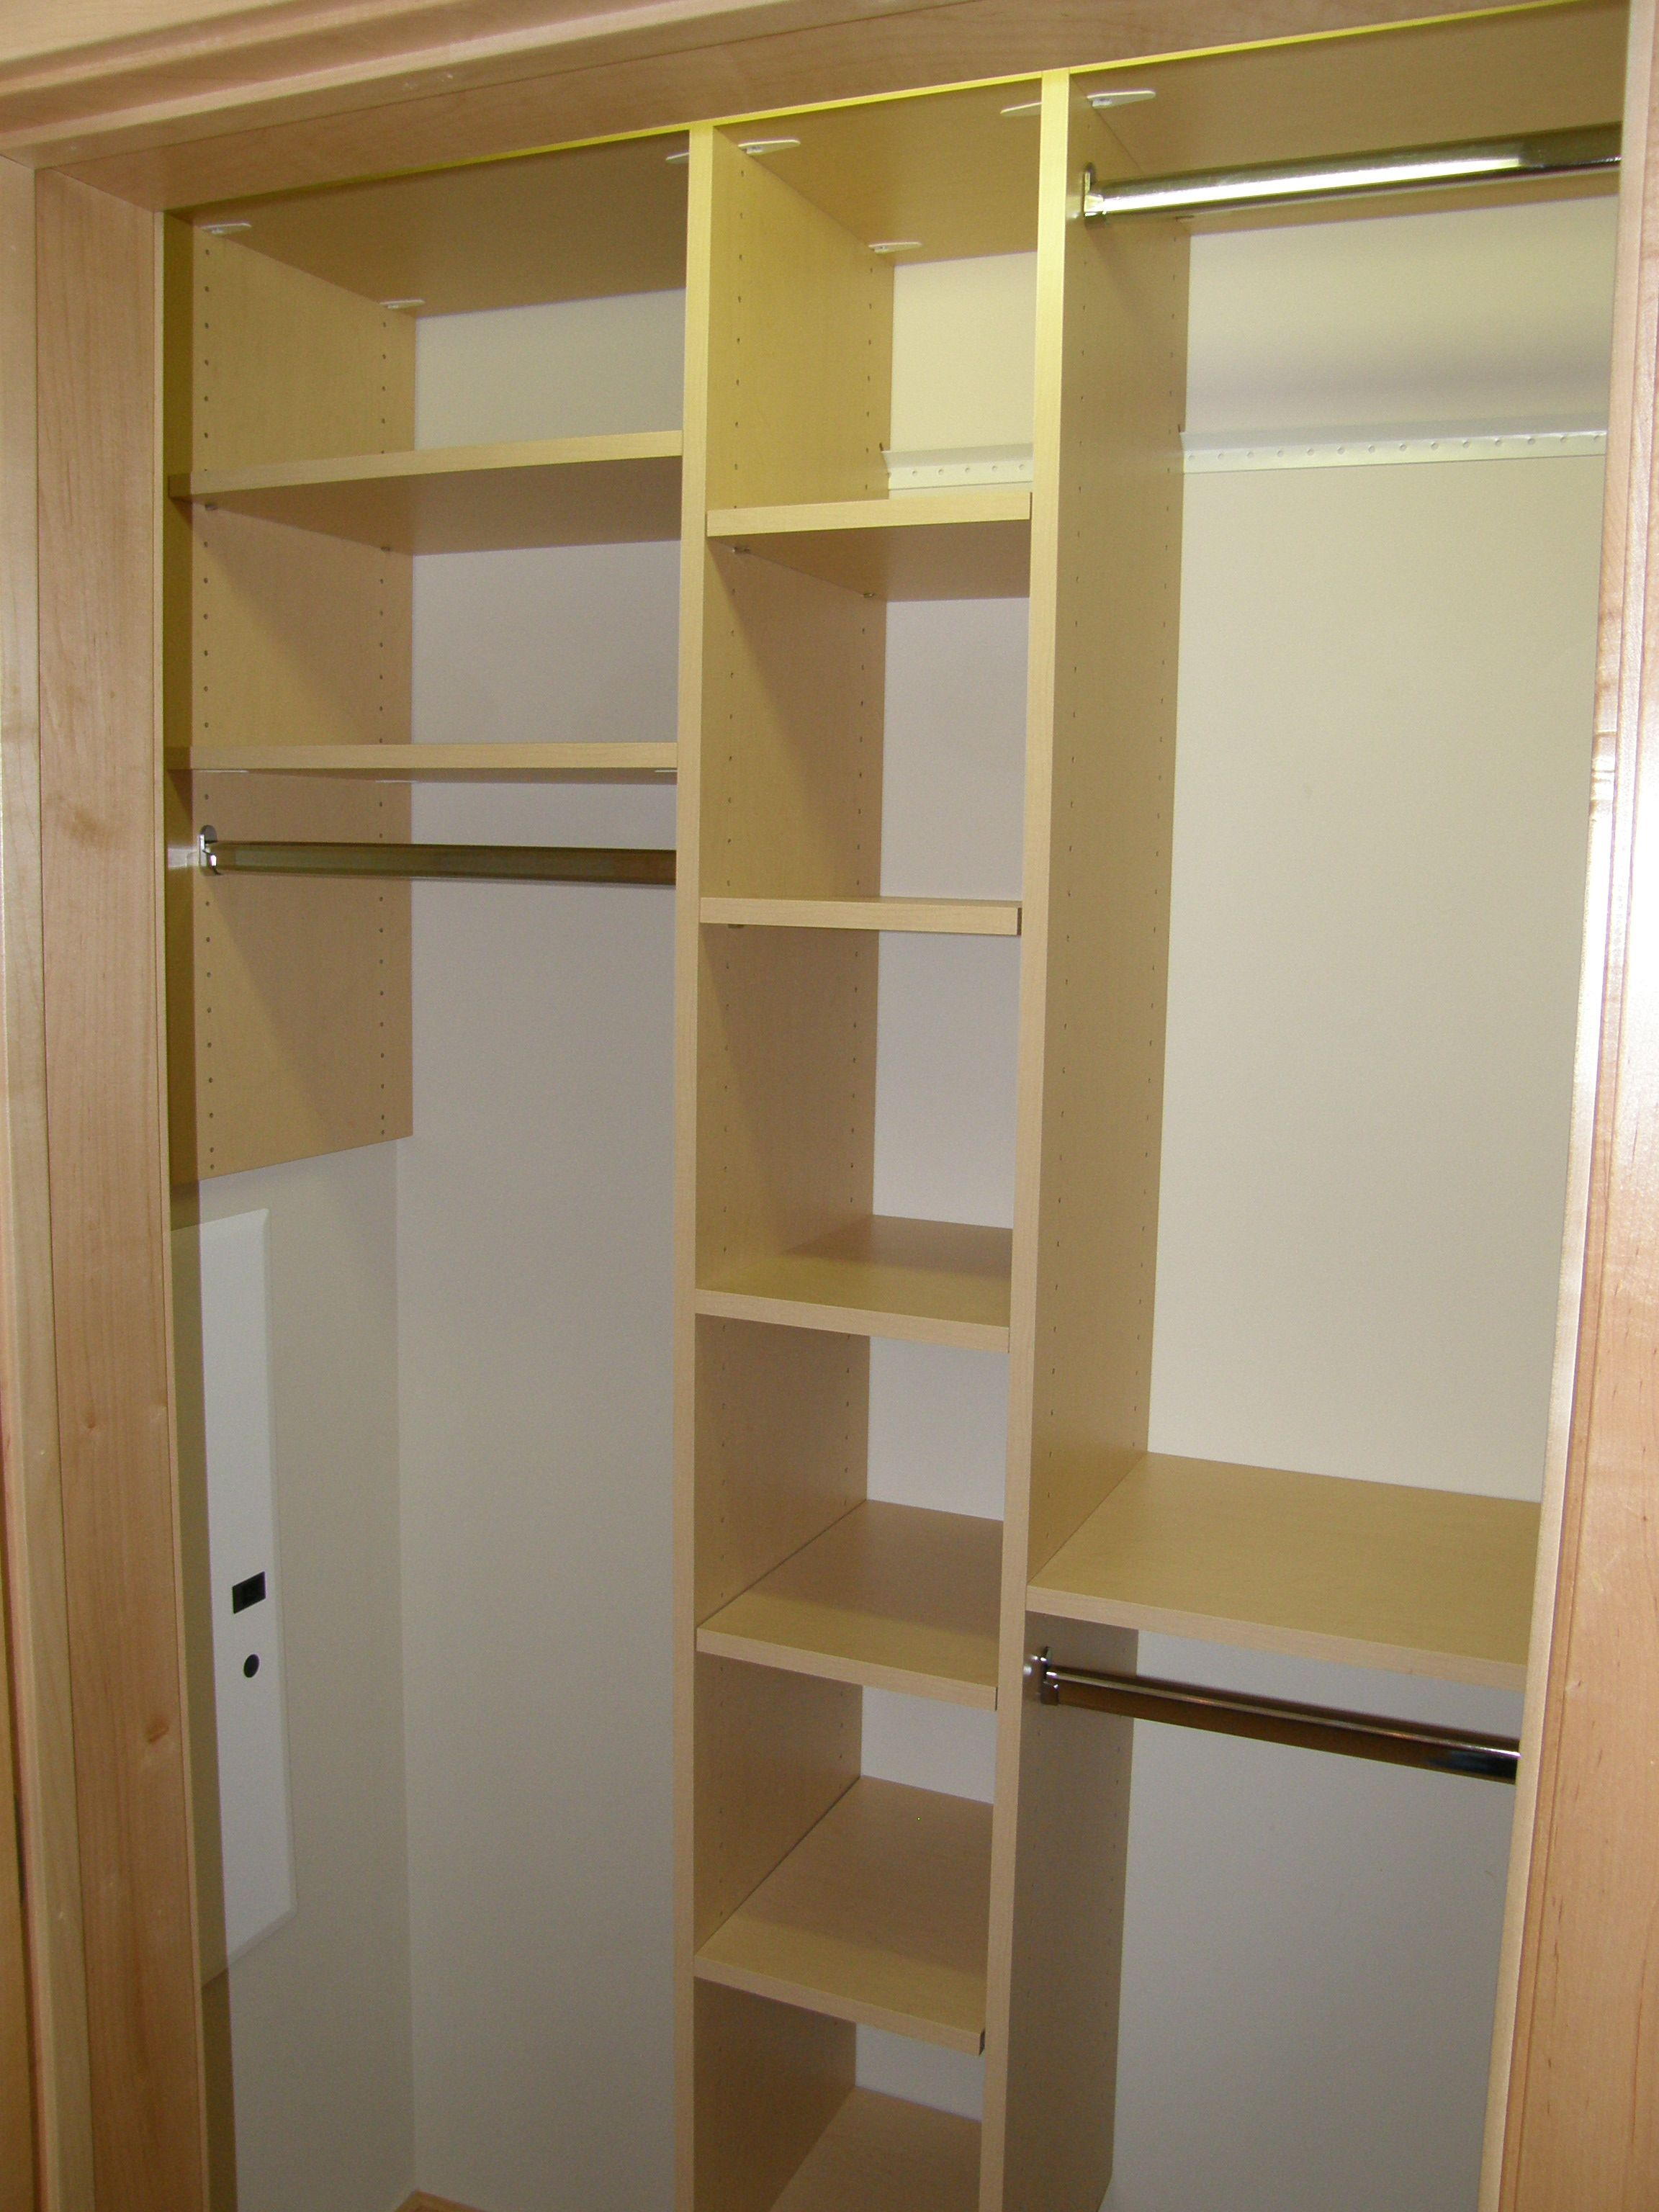 Charming Front Entry Custom Organization By Closets For Life   Multiple Closet Rods  At Different Heights Make